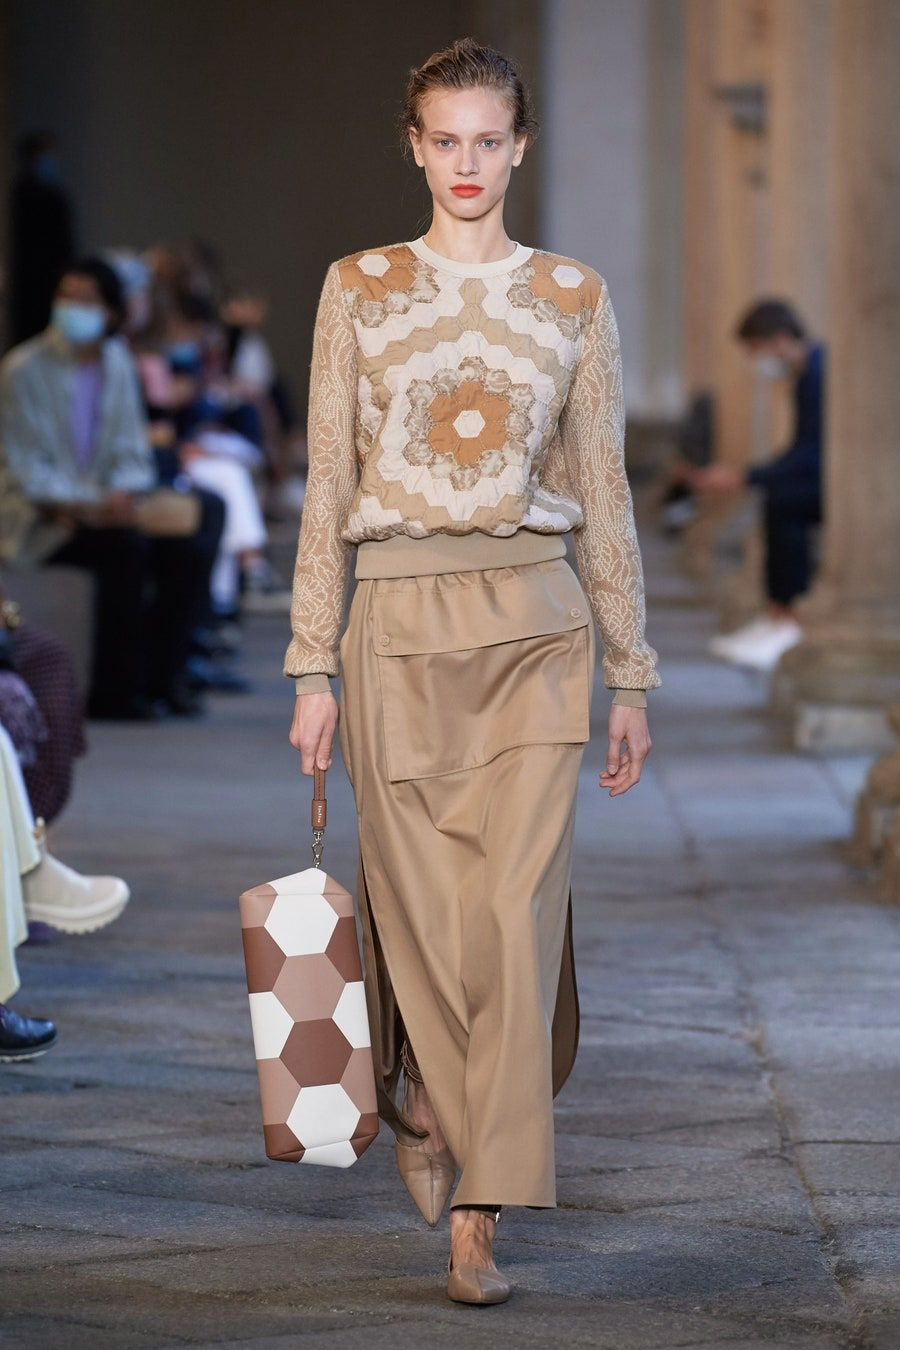 Max Mara Spring 2021 Ready To Wear Collection Runway Looks Beauty Models And Reviews 2020 패션